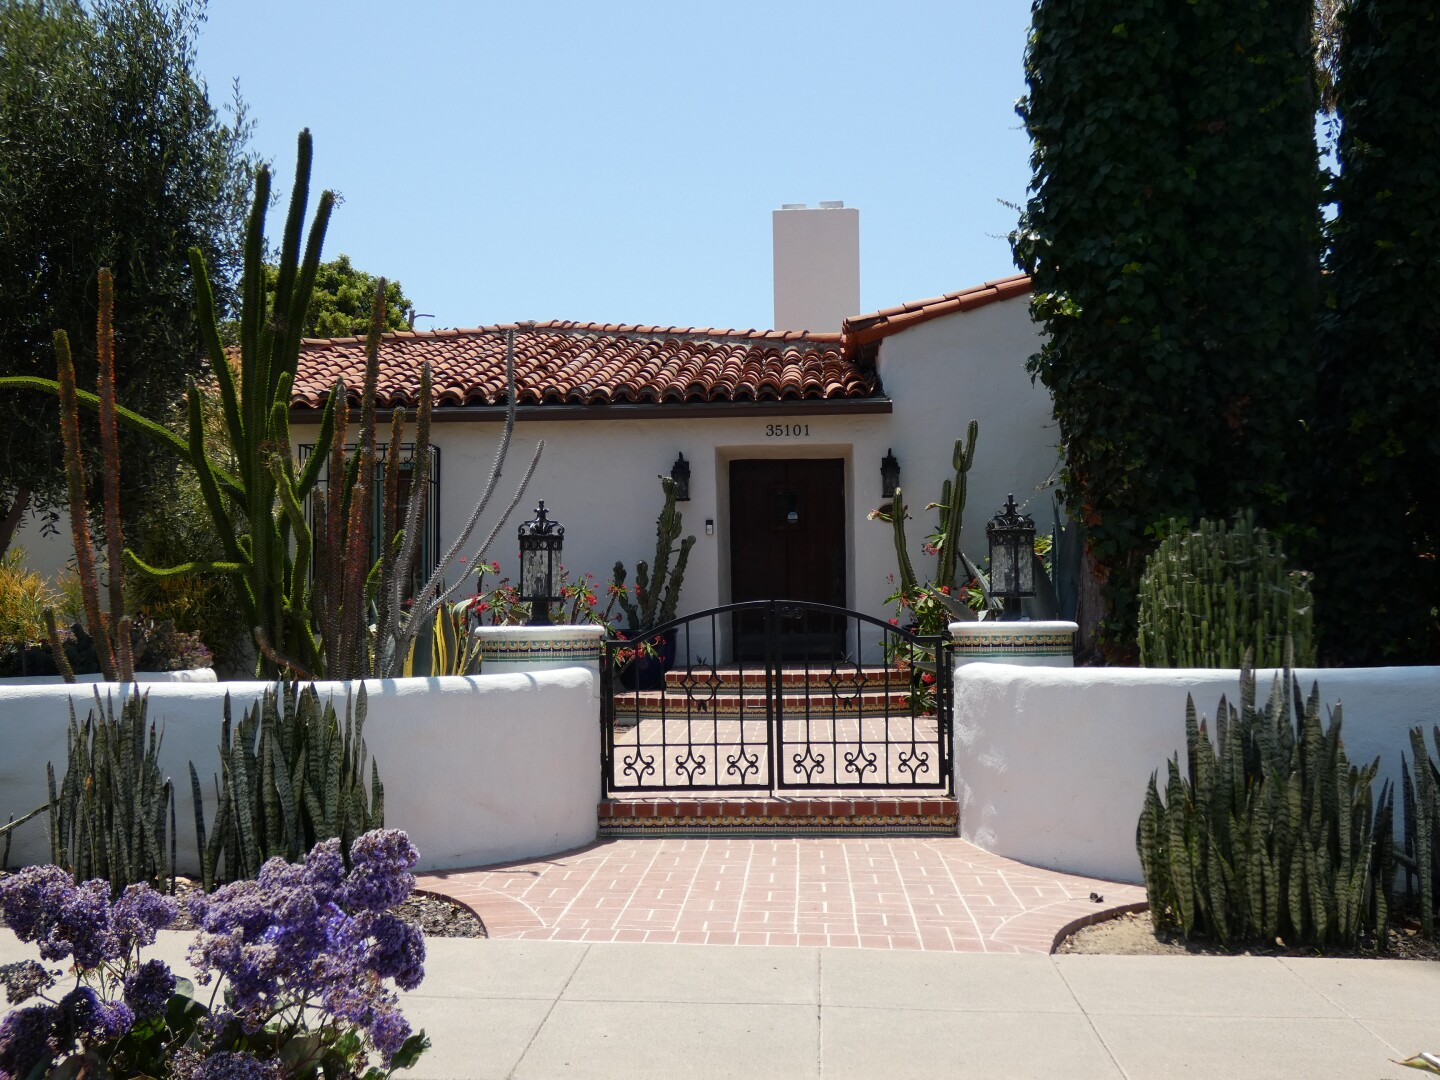 A Spanish Colonial Revival-style house features a red-tiled roof, an ornate black gate and a short white wall at its front. Various cacti and other foliage decorate the house's front.